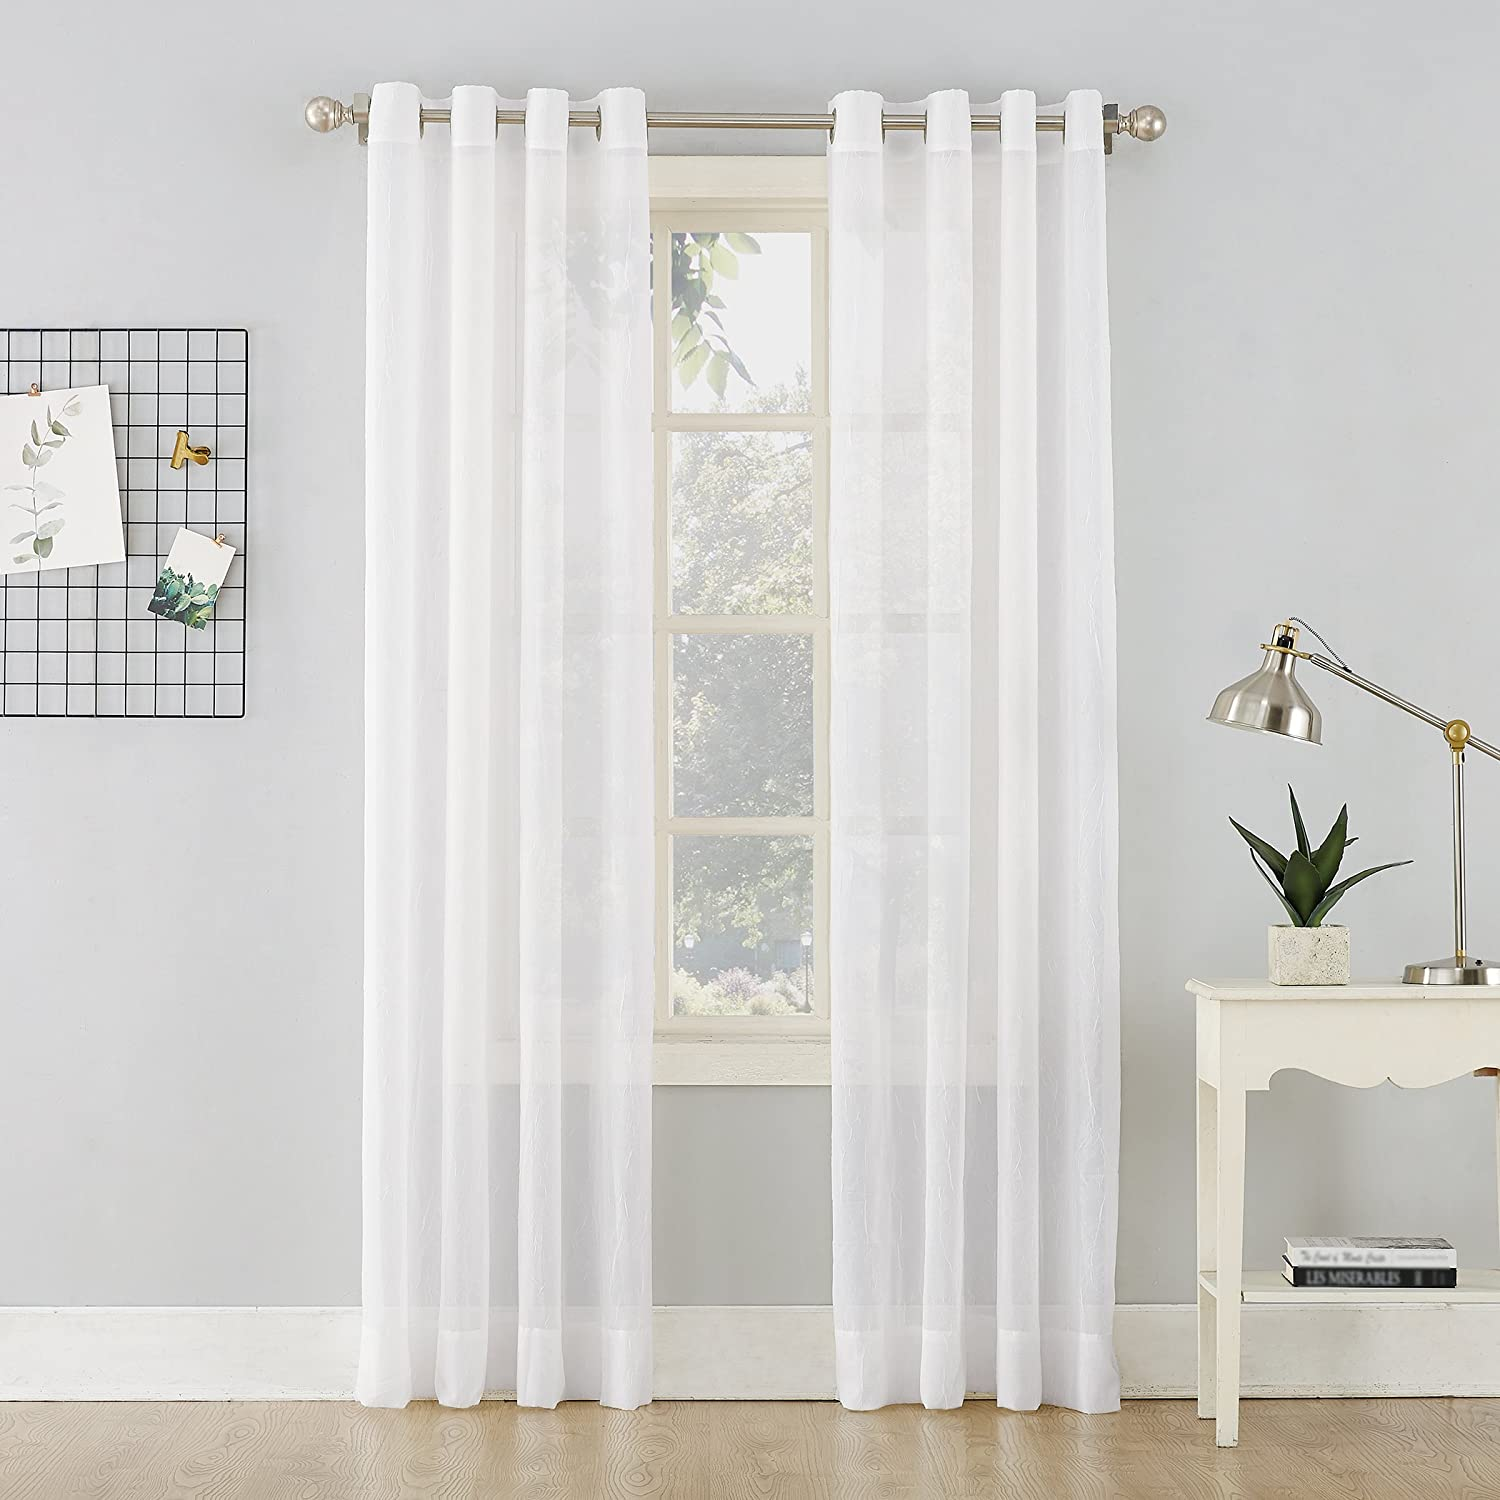 No. 918 Erica Crushed Sheer Voile Grommet Curtain Panel, 51